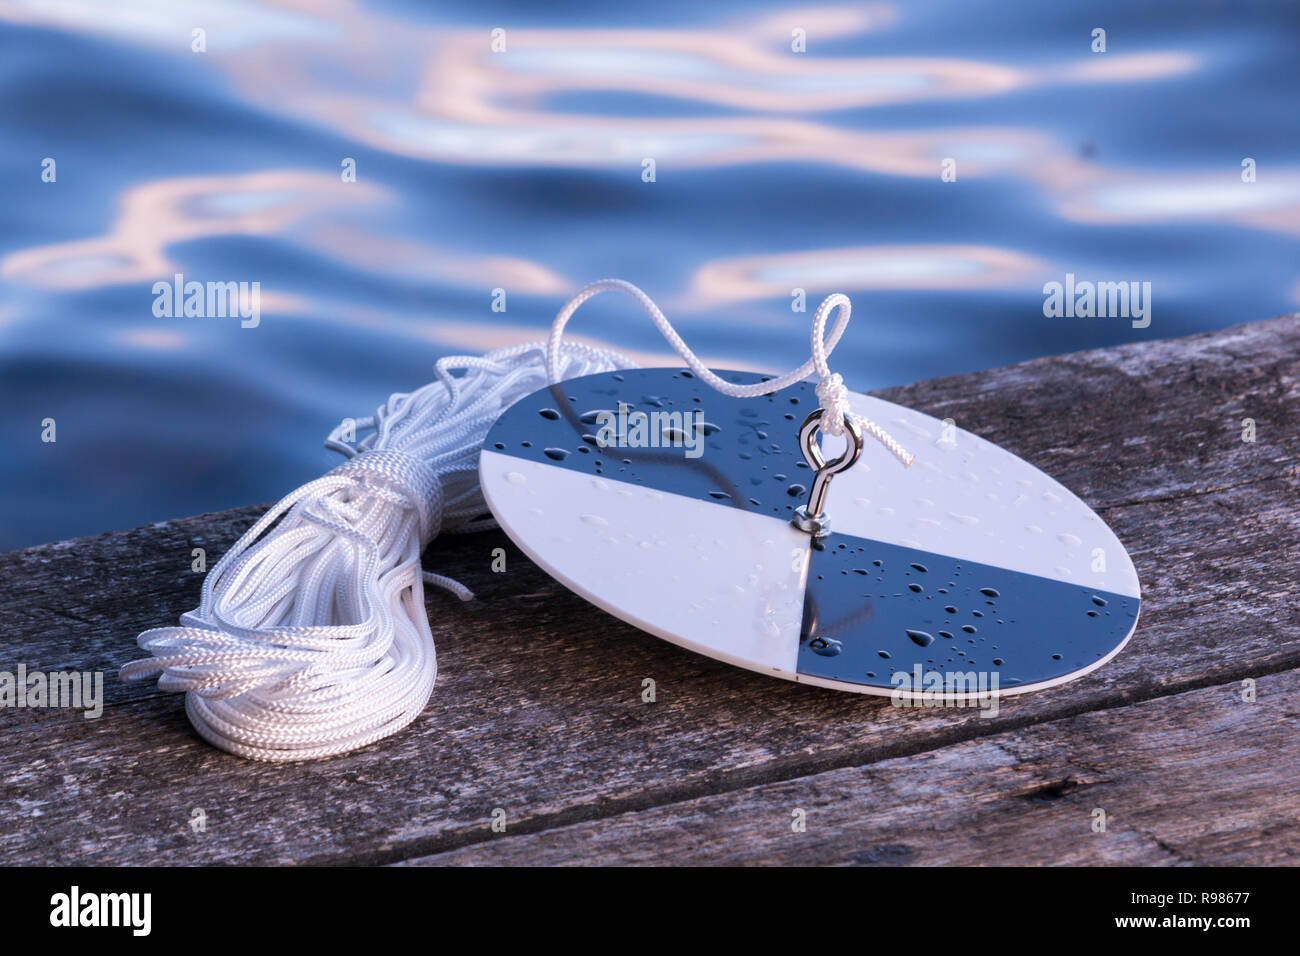 Secchi disk with rope on a wooden dock, prepared for water transparency measurement. - Stock Image